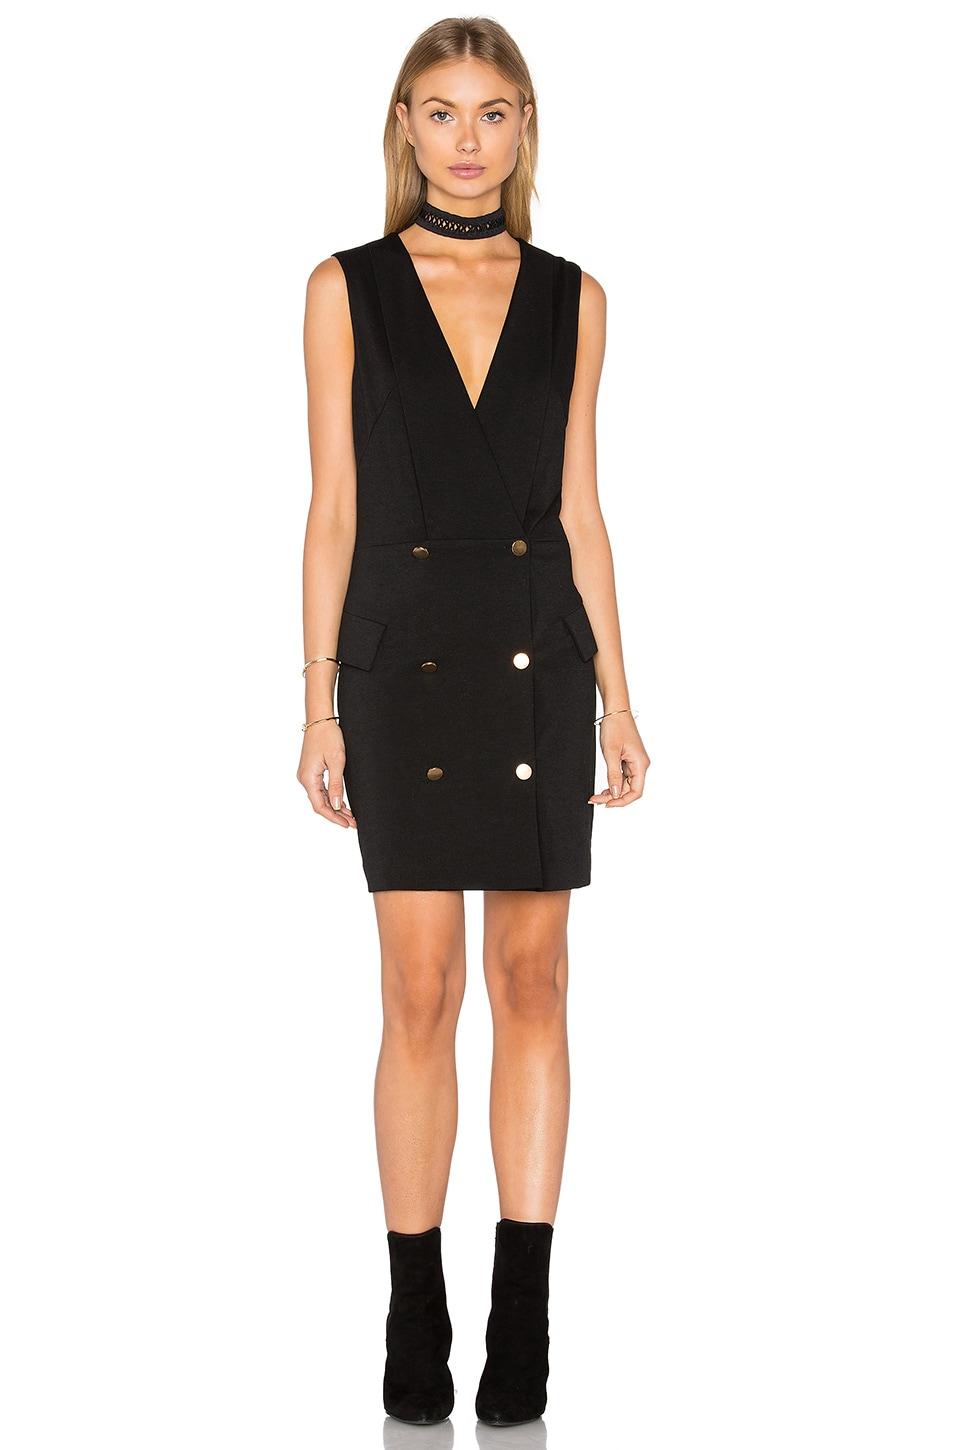 MINKPINK Crawford Blazer Dress in Black